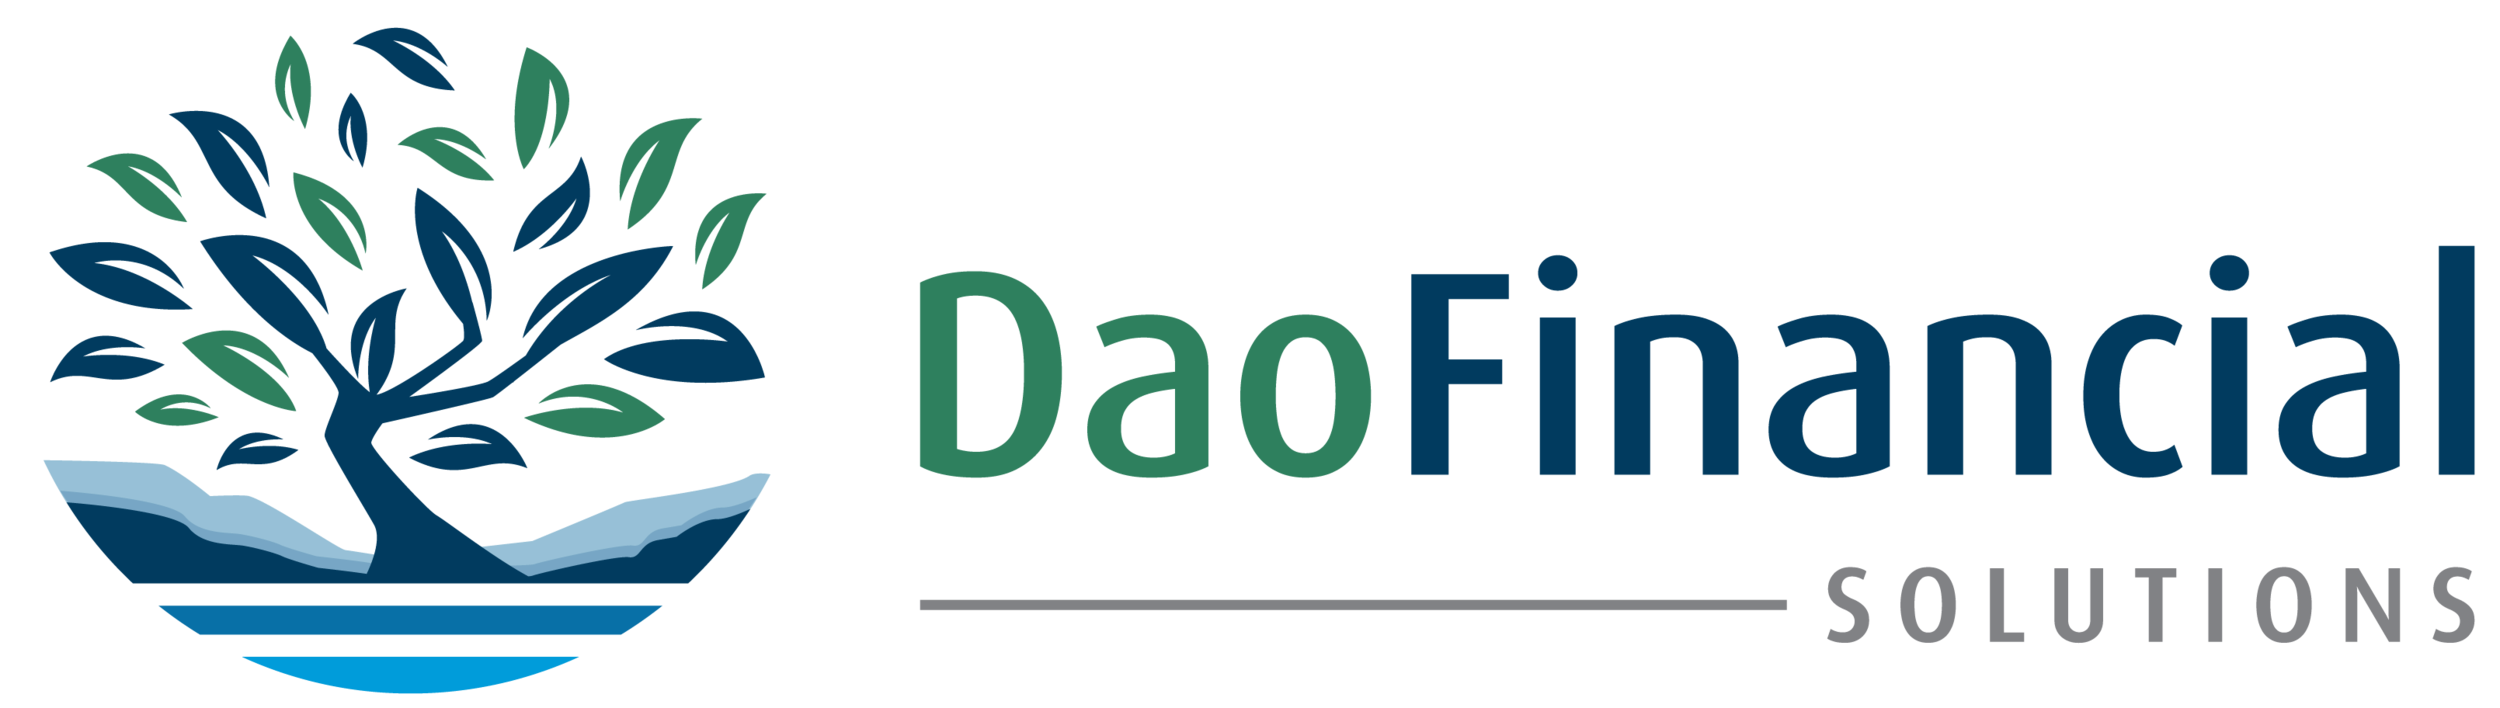 Dao-Financial-Solutions_text.png